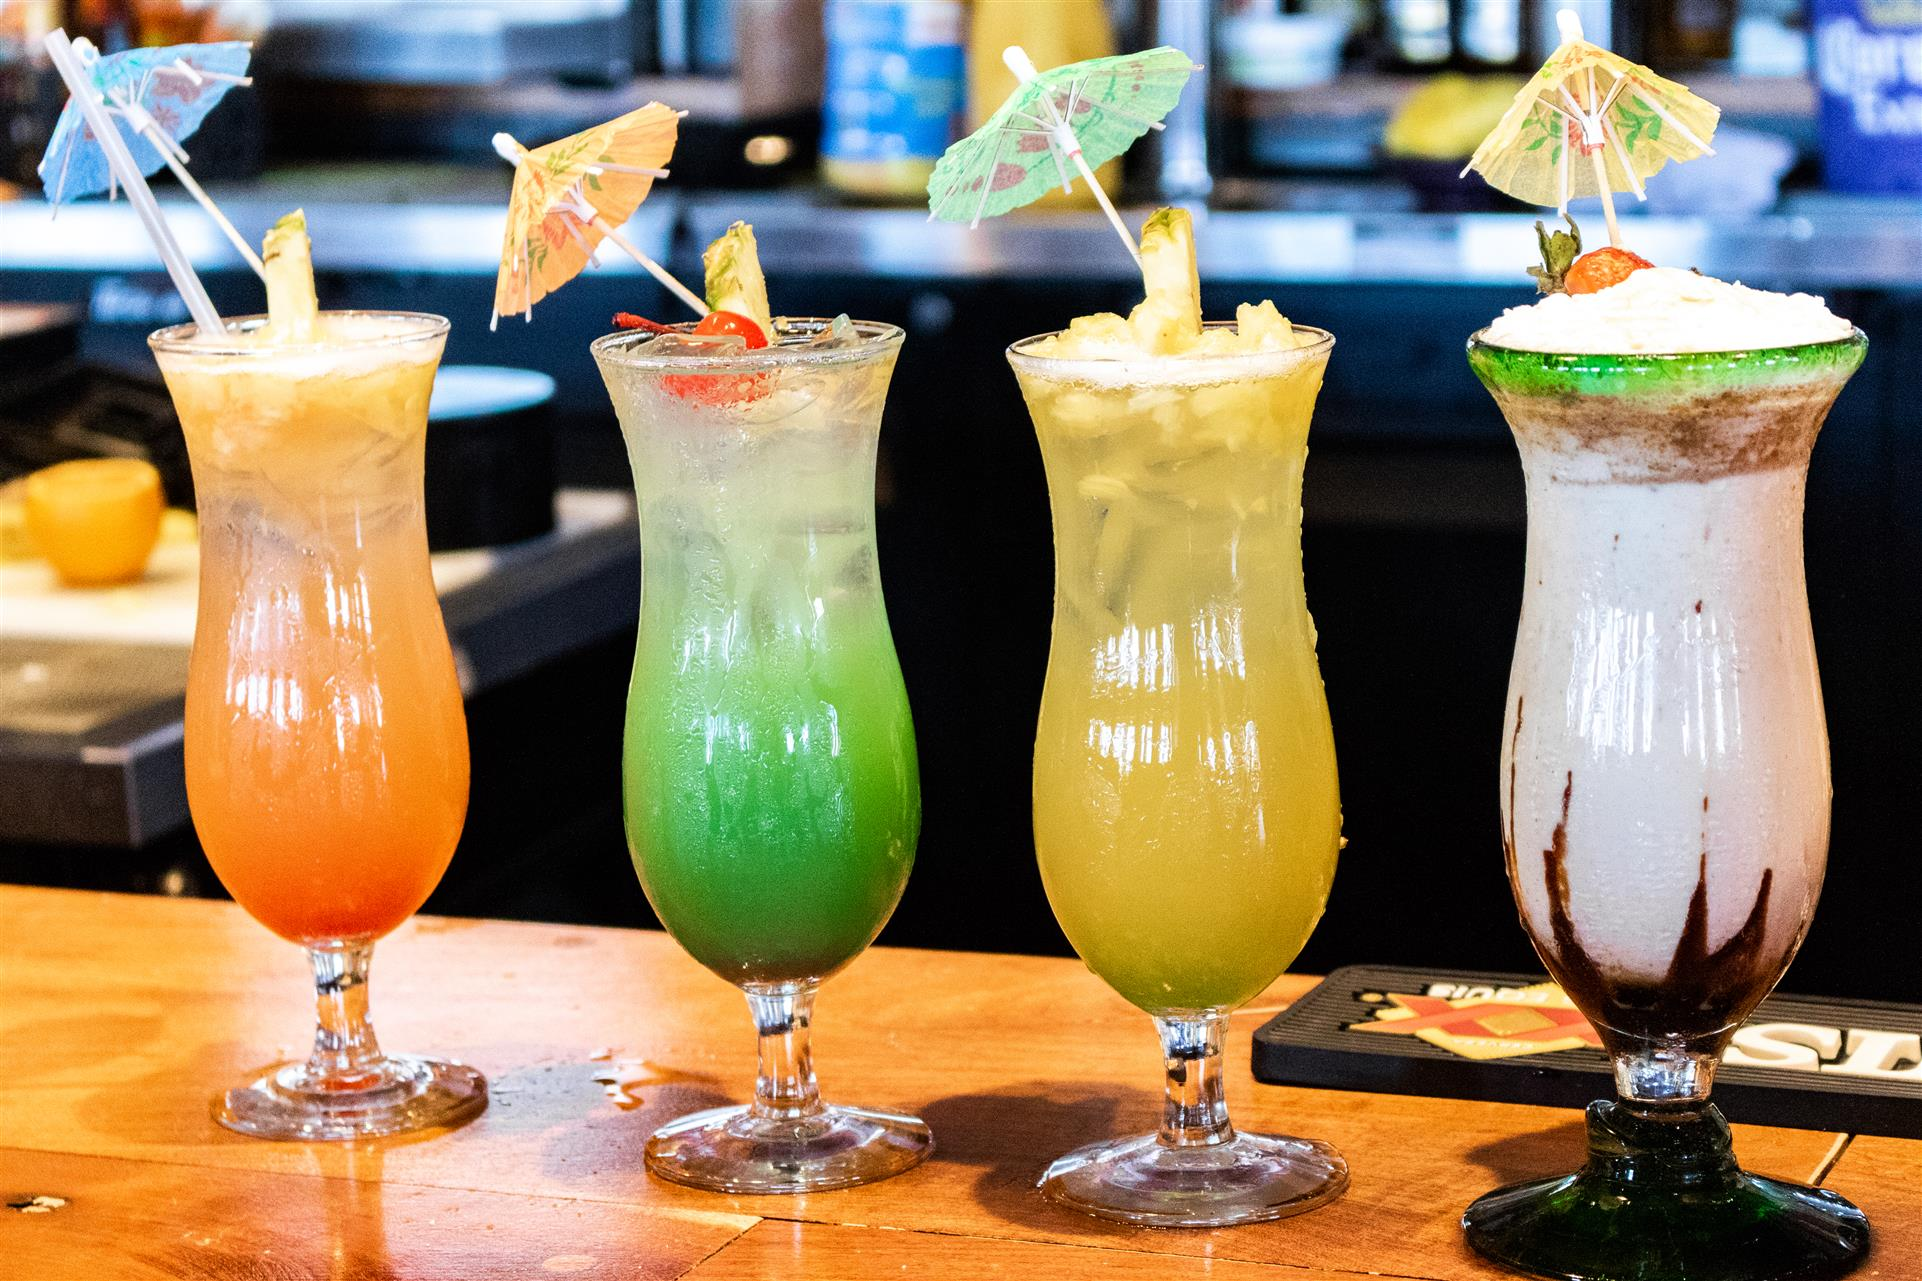 various cocktail drinks with umbrellas being displayed on the bar